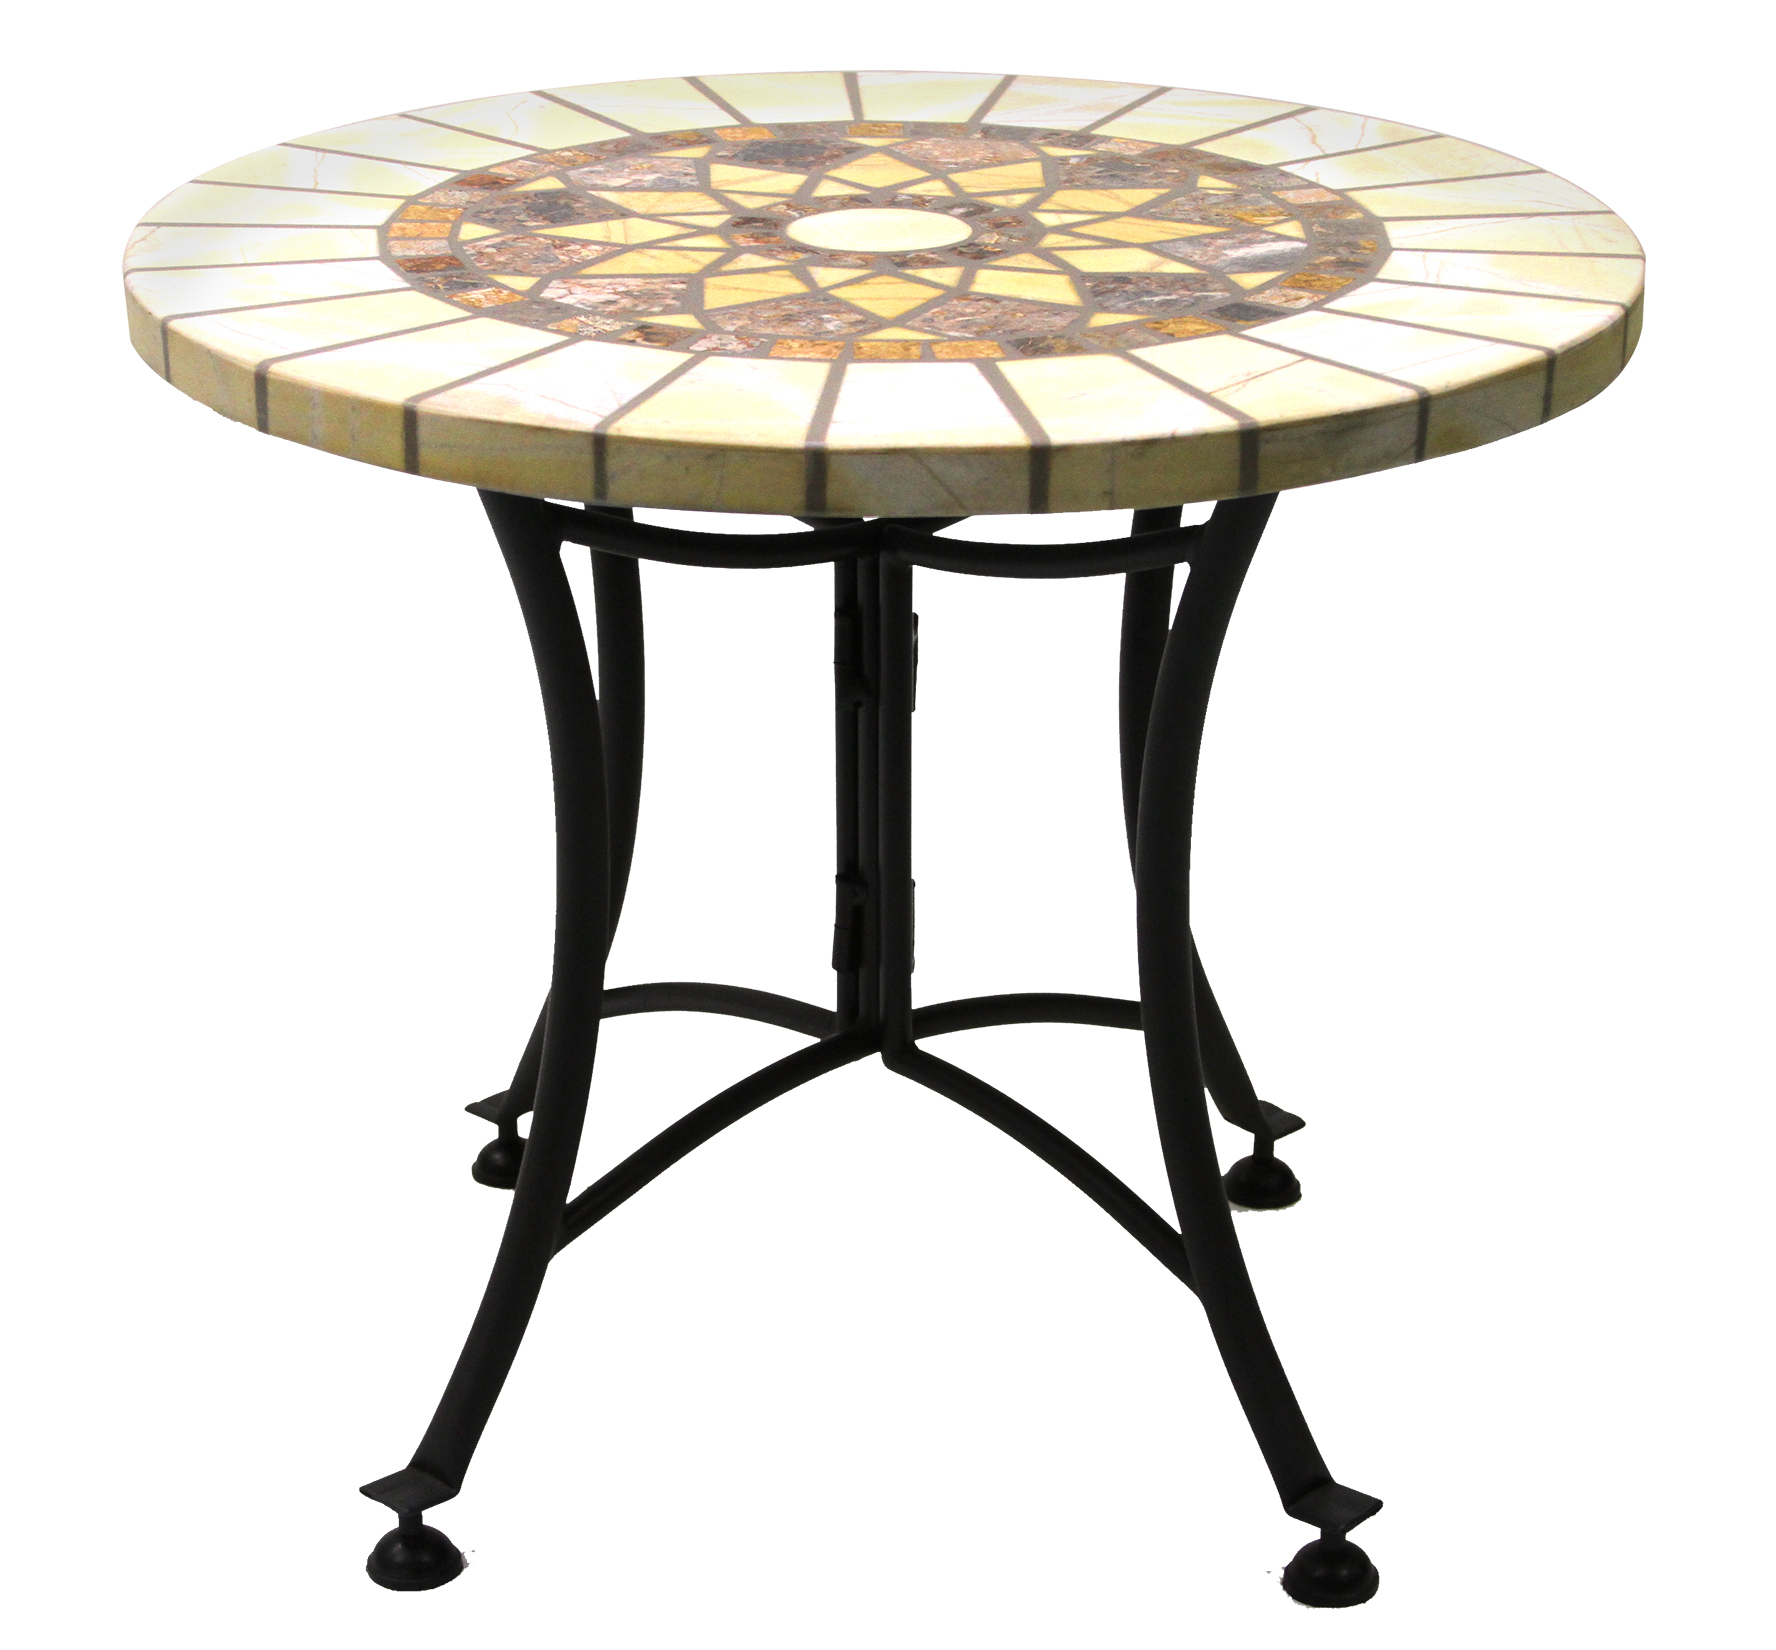 amazing metal accent table outdoor white target threshold top base wrought legs bronze drum iron side corranade tables round glass patio marble full size nautical nursery lamp